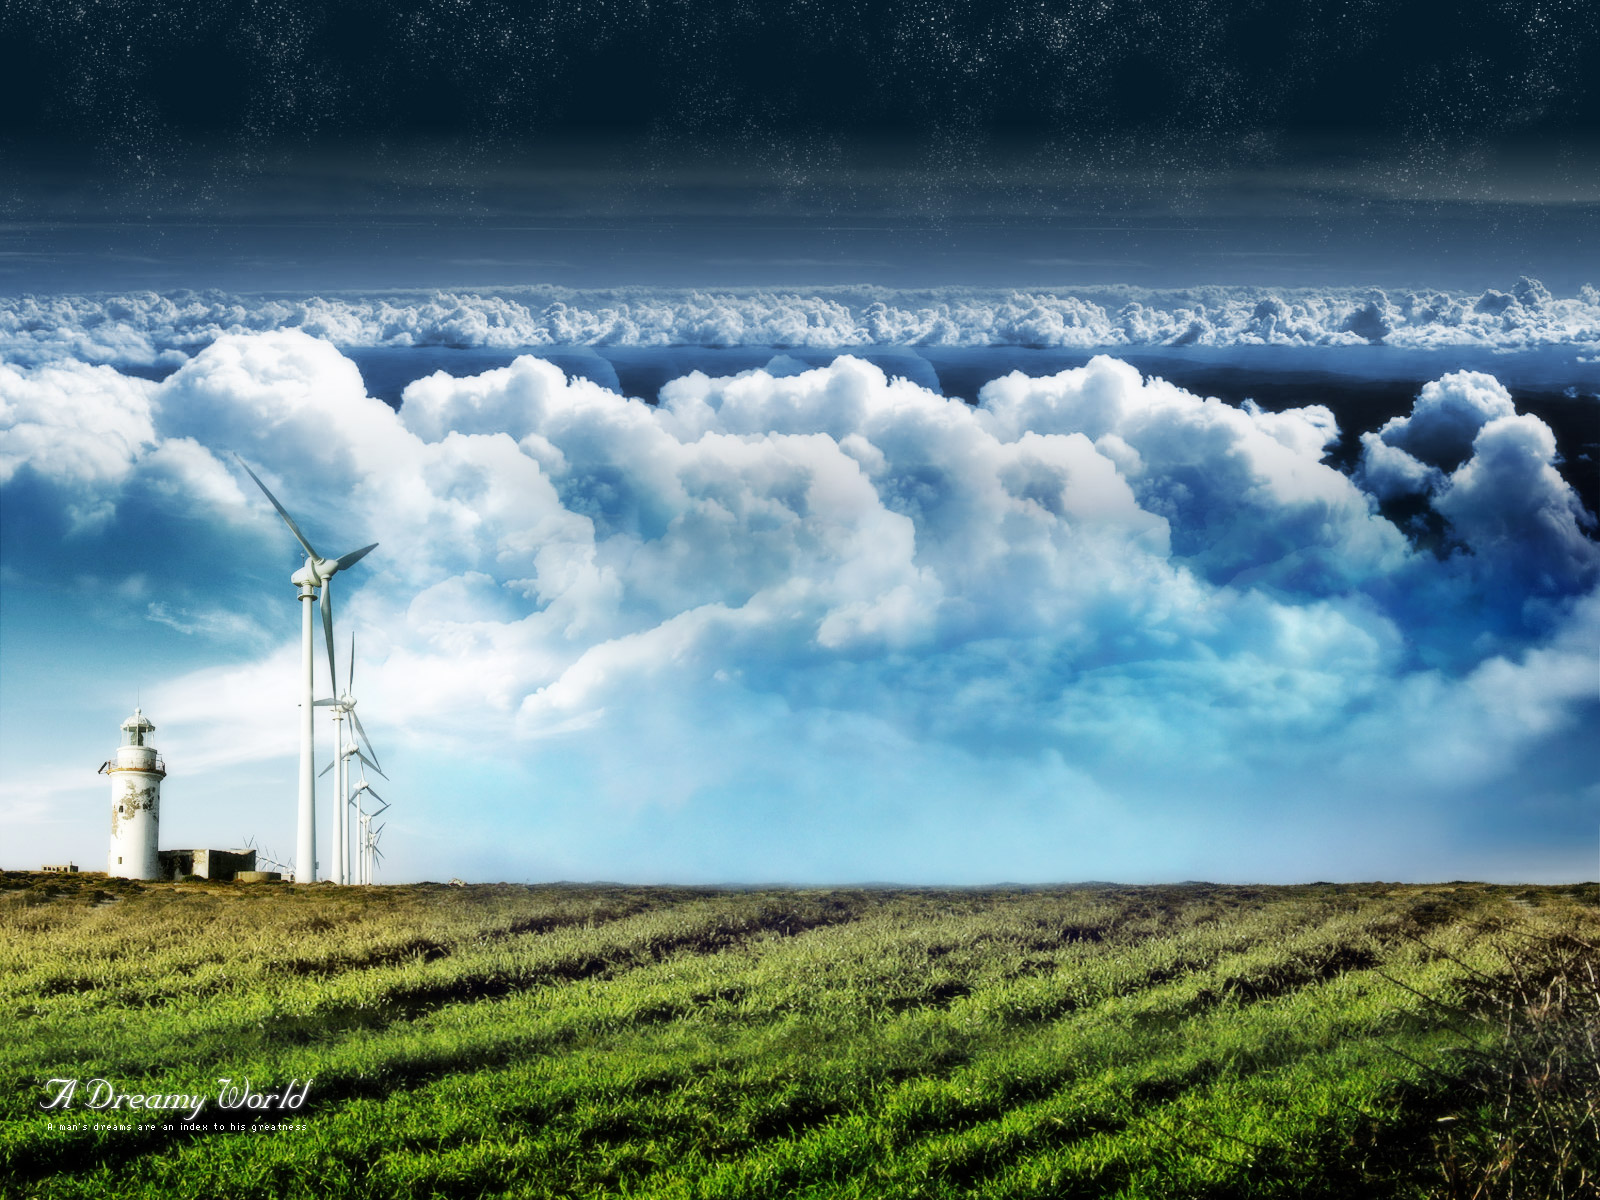 3D Scenery Post, Green Grass, a Line of Windmills Under the Cloudy Sky, Impressive in Look 1600X1200 free wallpaper download